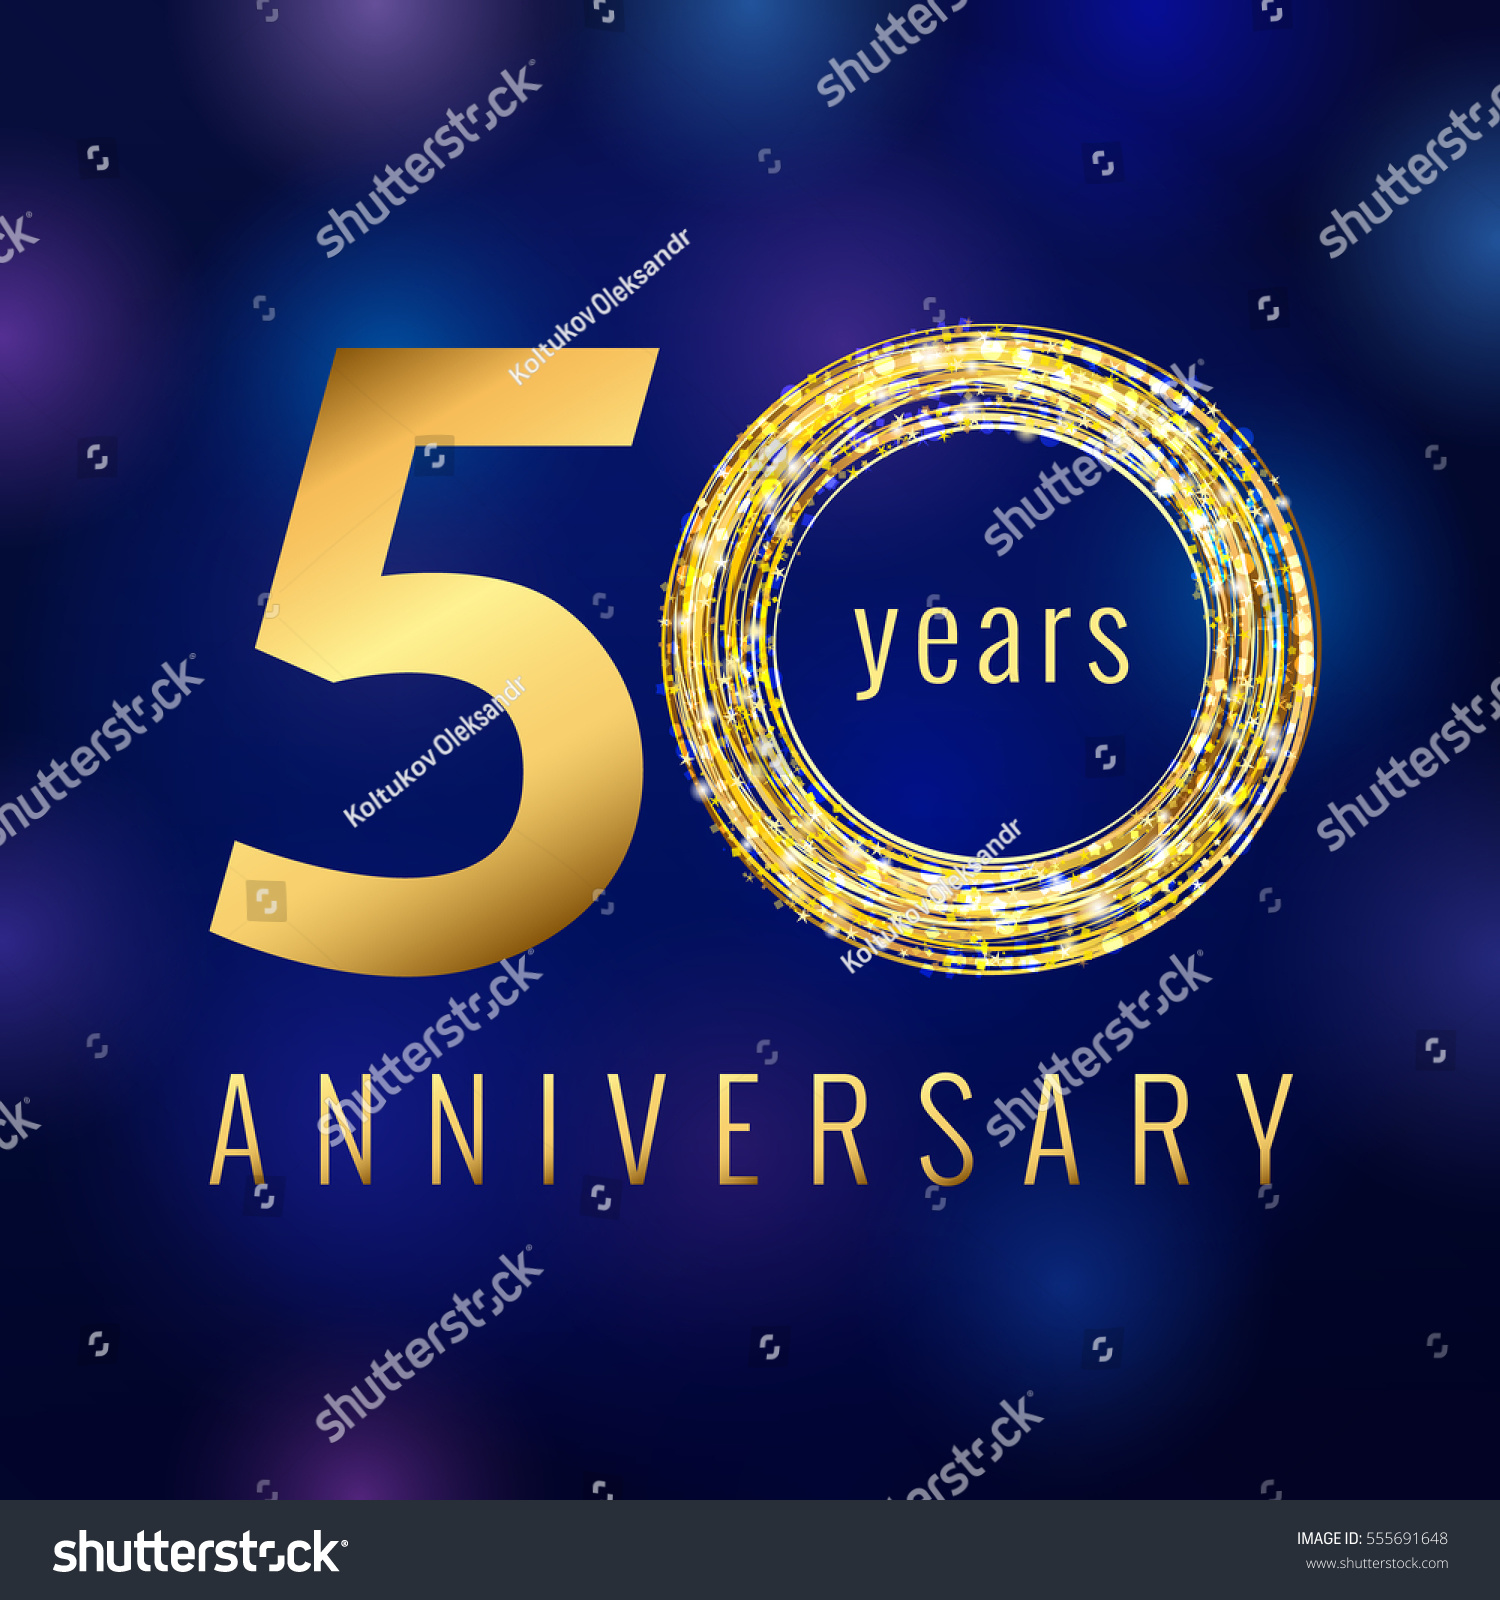 Anniversary 50 year number gold colored stock vector 555691648 anniversary 50 year number gold colored vector logo fifty years colorful greeting card holiday buycottarizona Choice Image